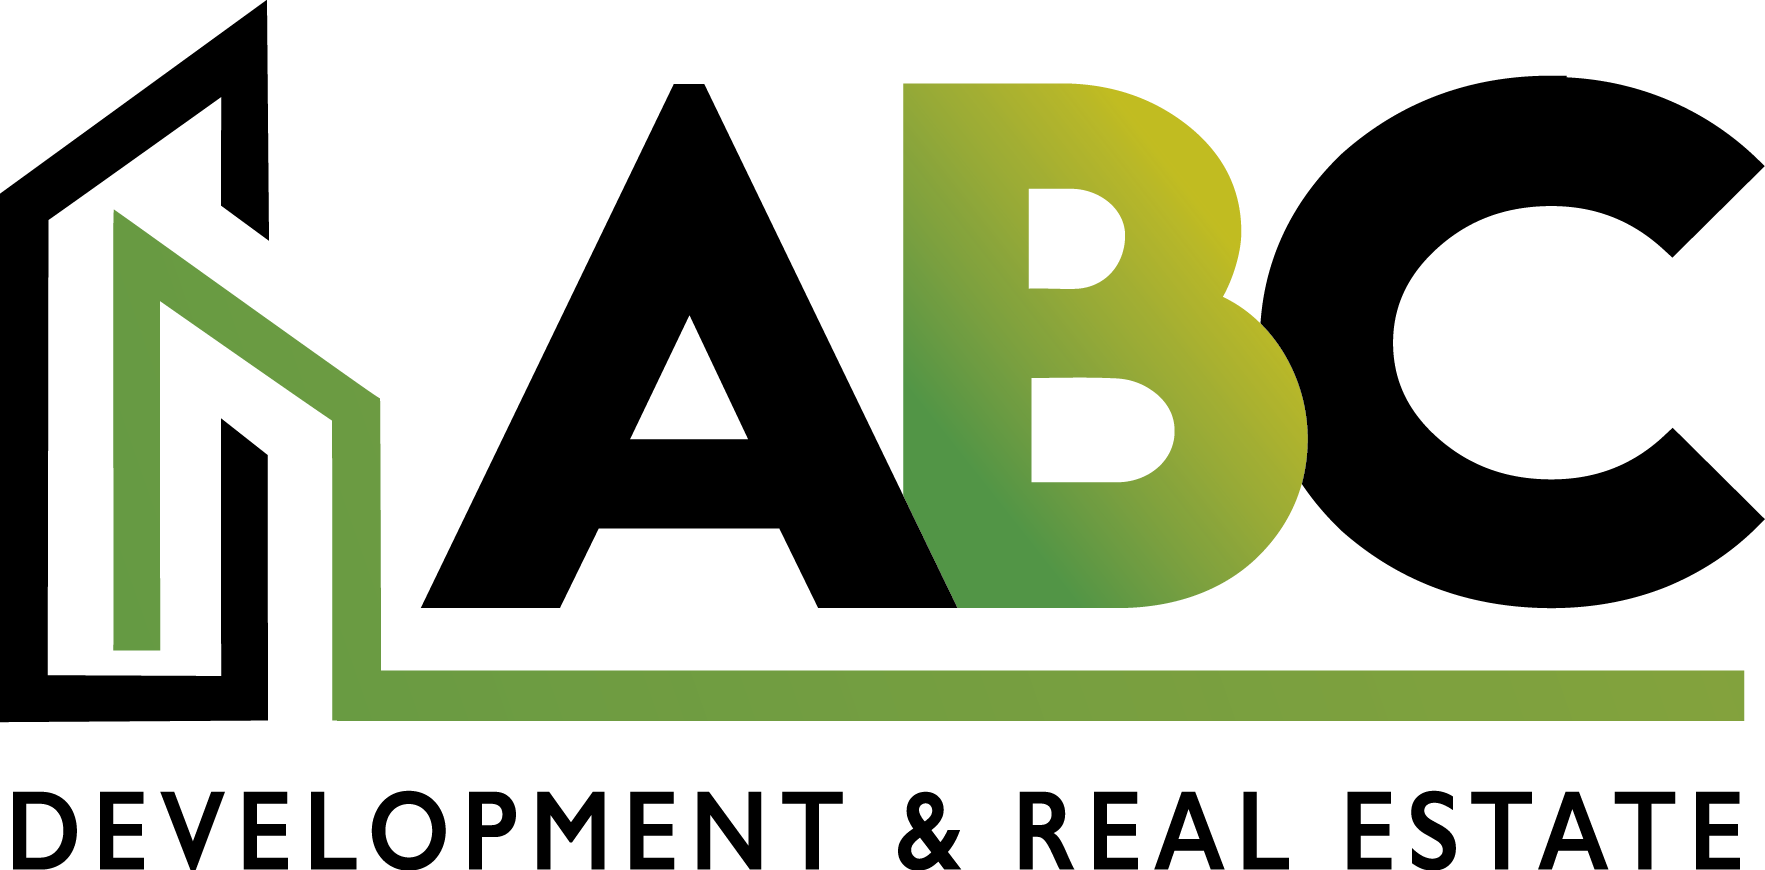 ABC REALESTATEDEVELOMPENT LOGO FIN JUNE 2021 01